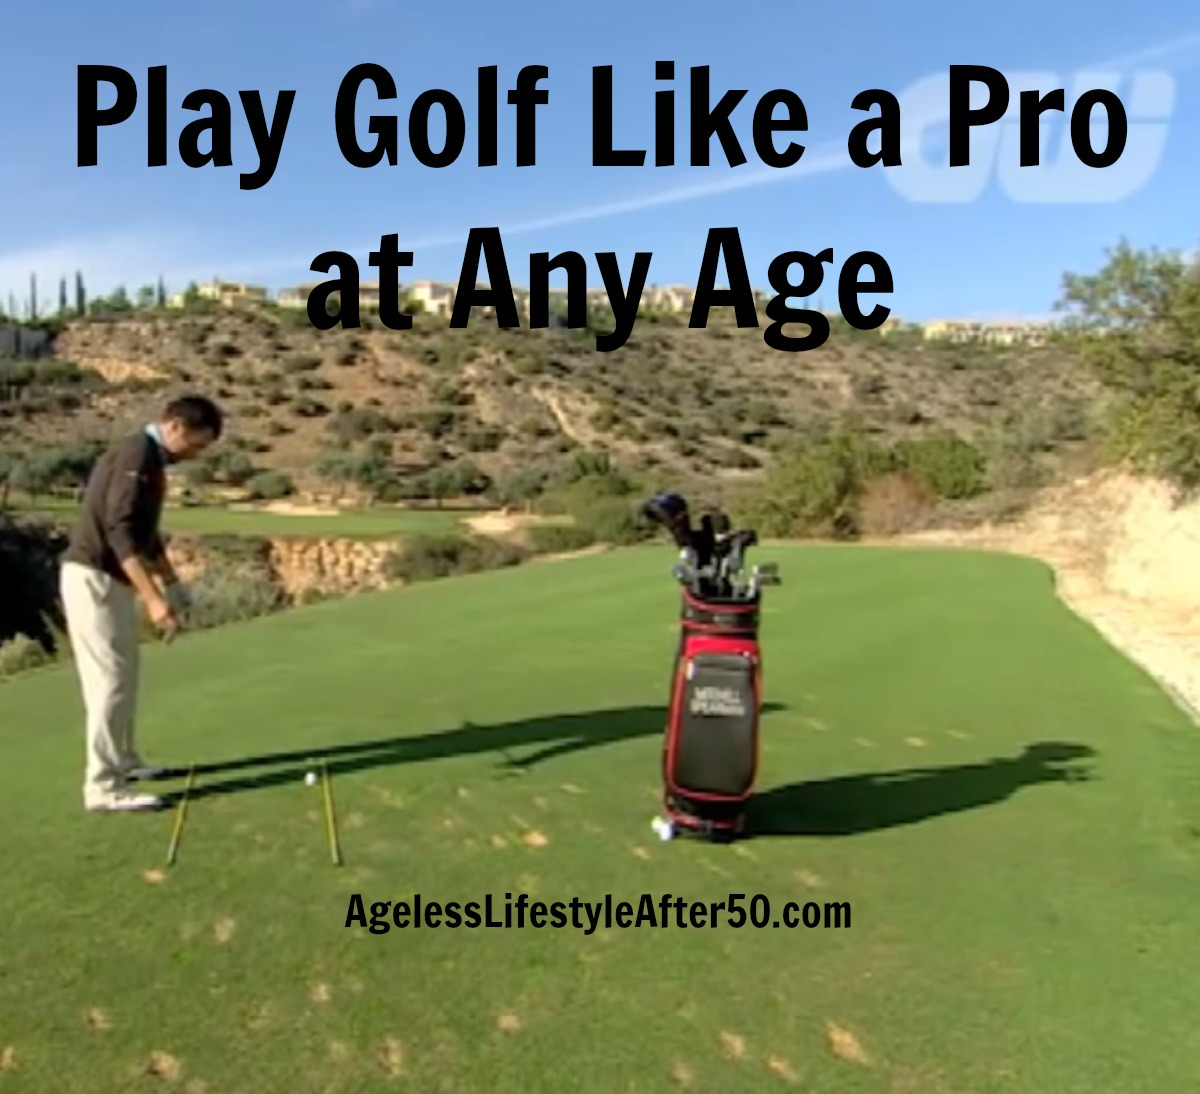 Play Golf Like a Pro at Any Age